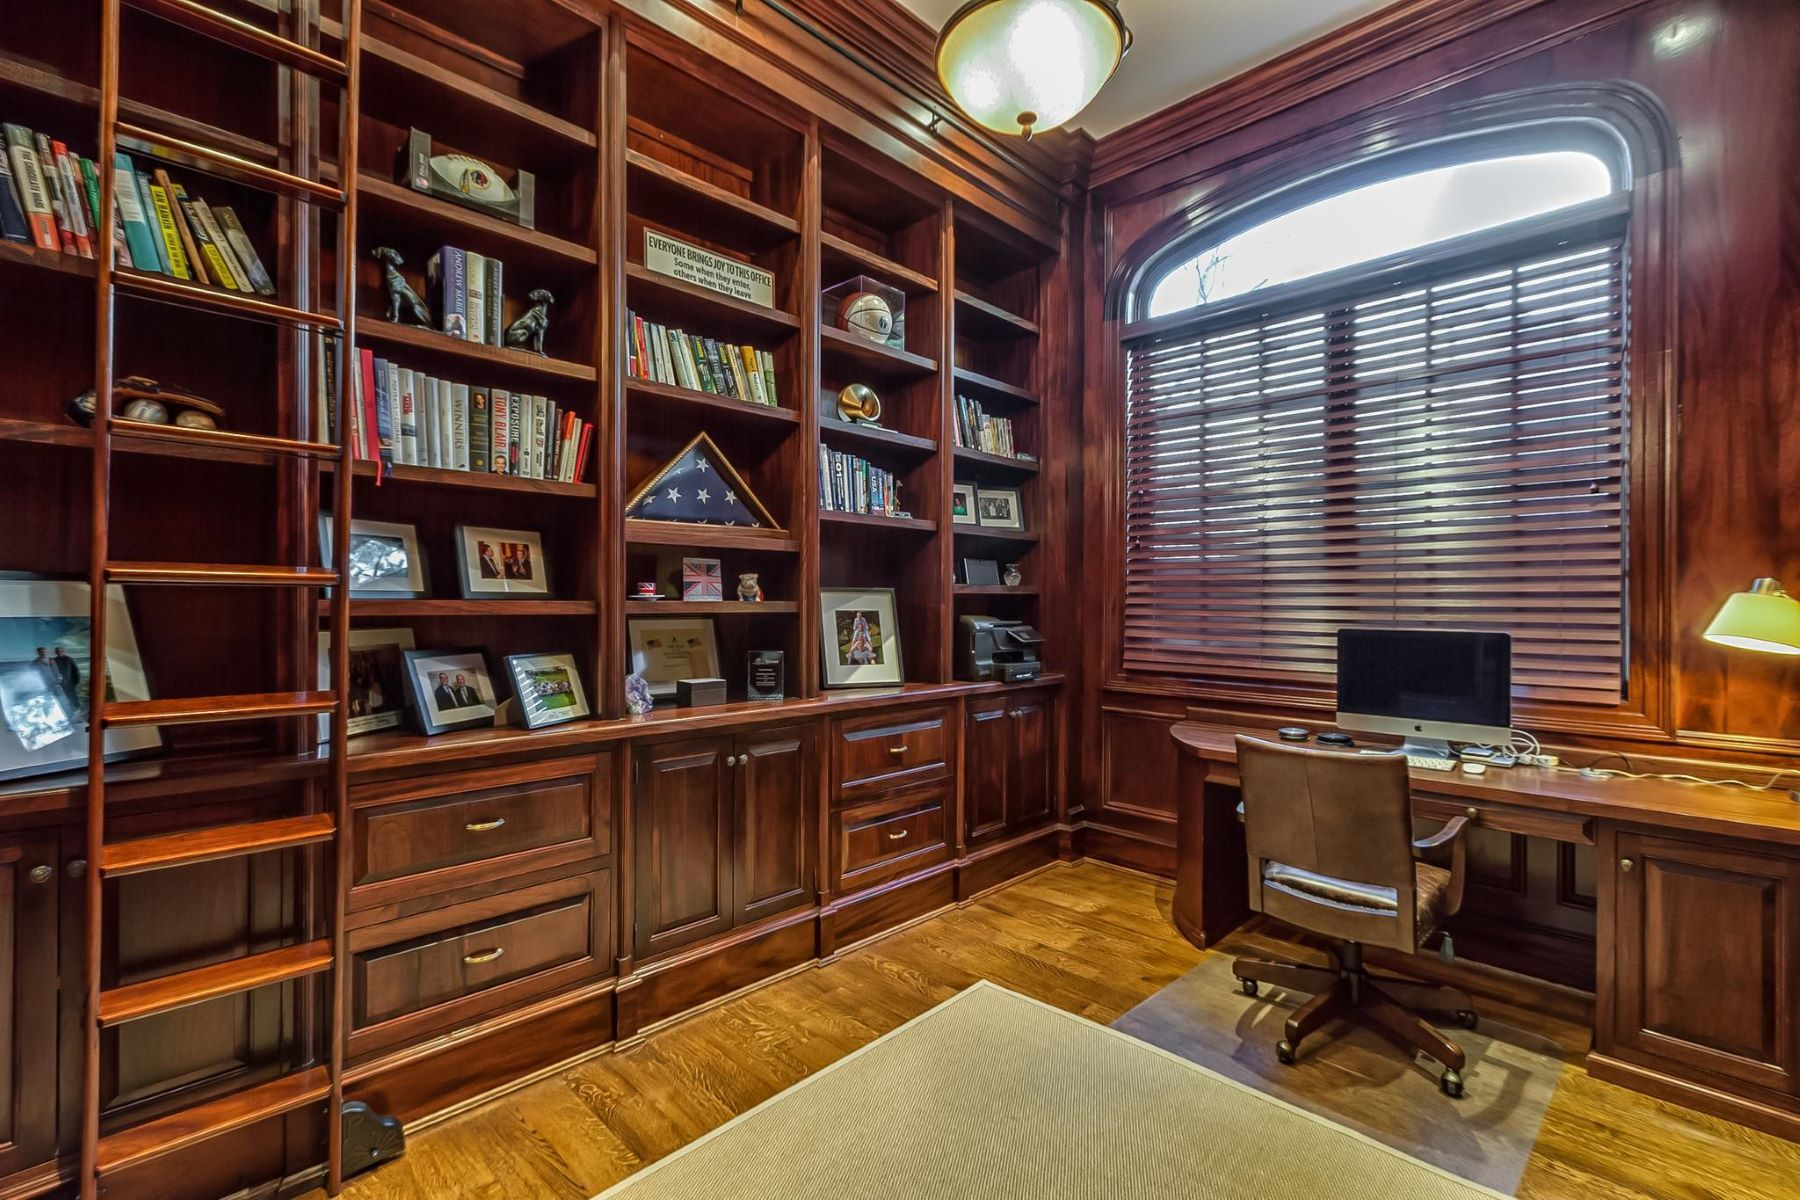 Additional photo for property listing at 3050 University Ter Nw 3050 University Ter Nw Washington, District Of Columbia 20016 United States